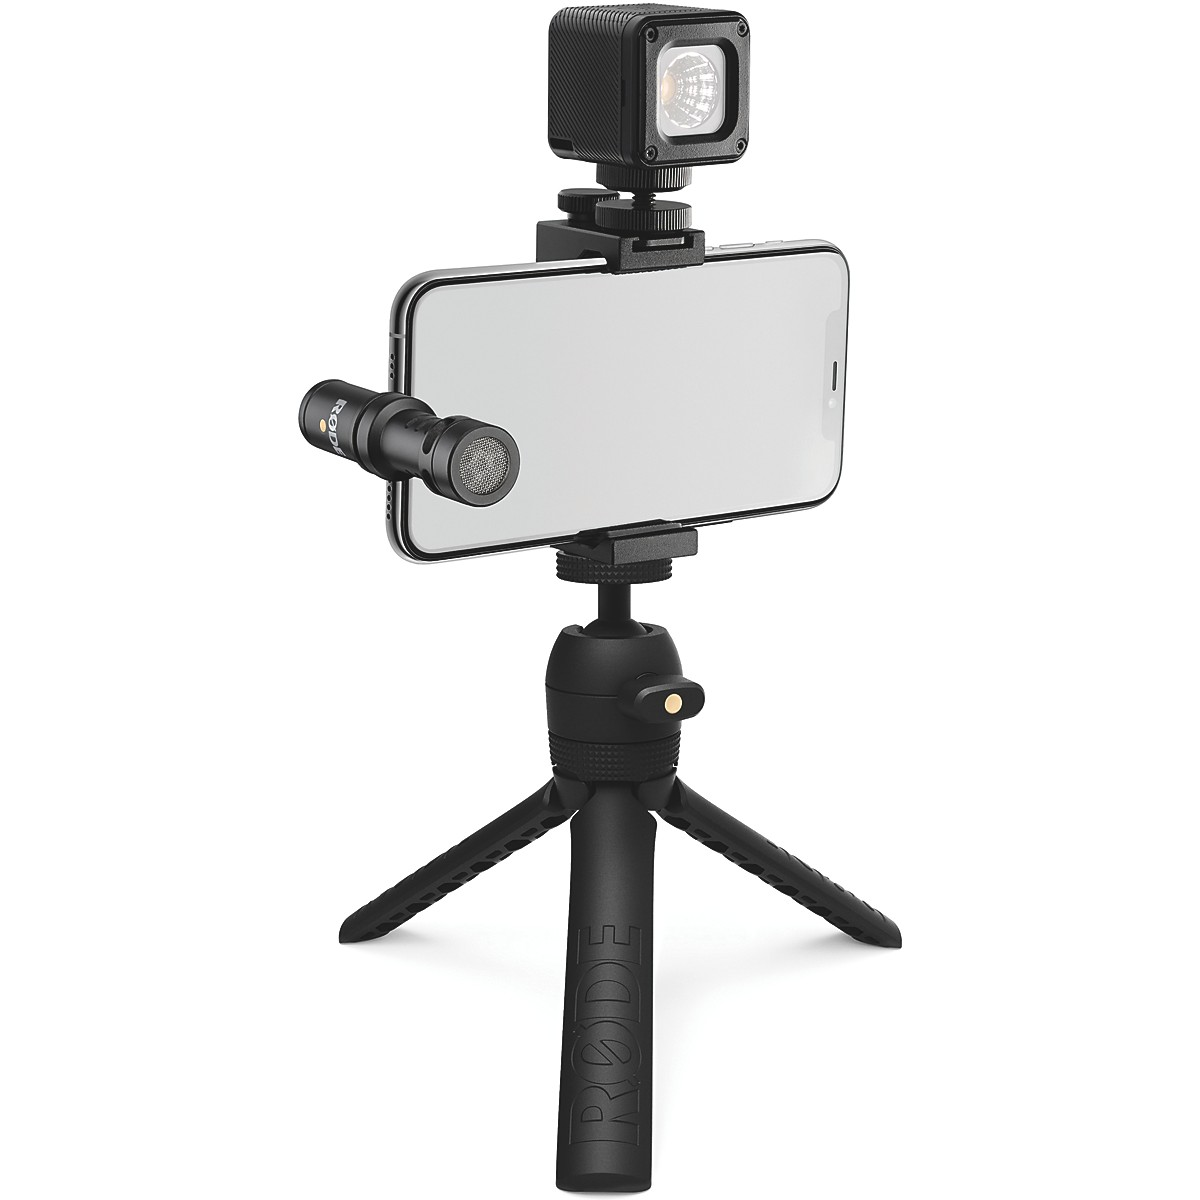 Rode Vlogger Kit for USB-C Devices - Includes Tripod, MicroLED light, VideoMic ME-C and Accessories